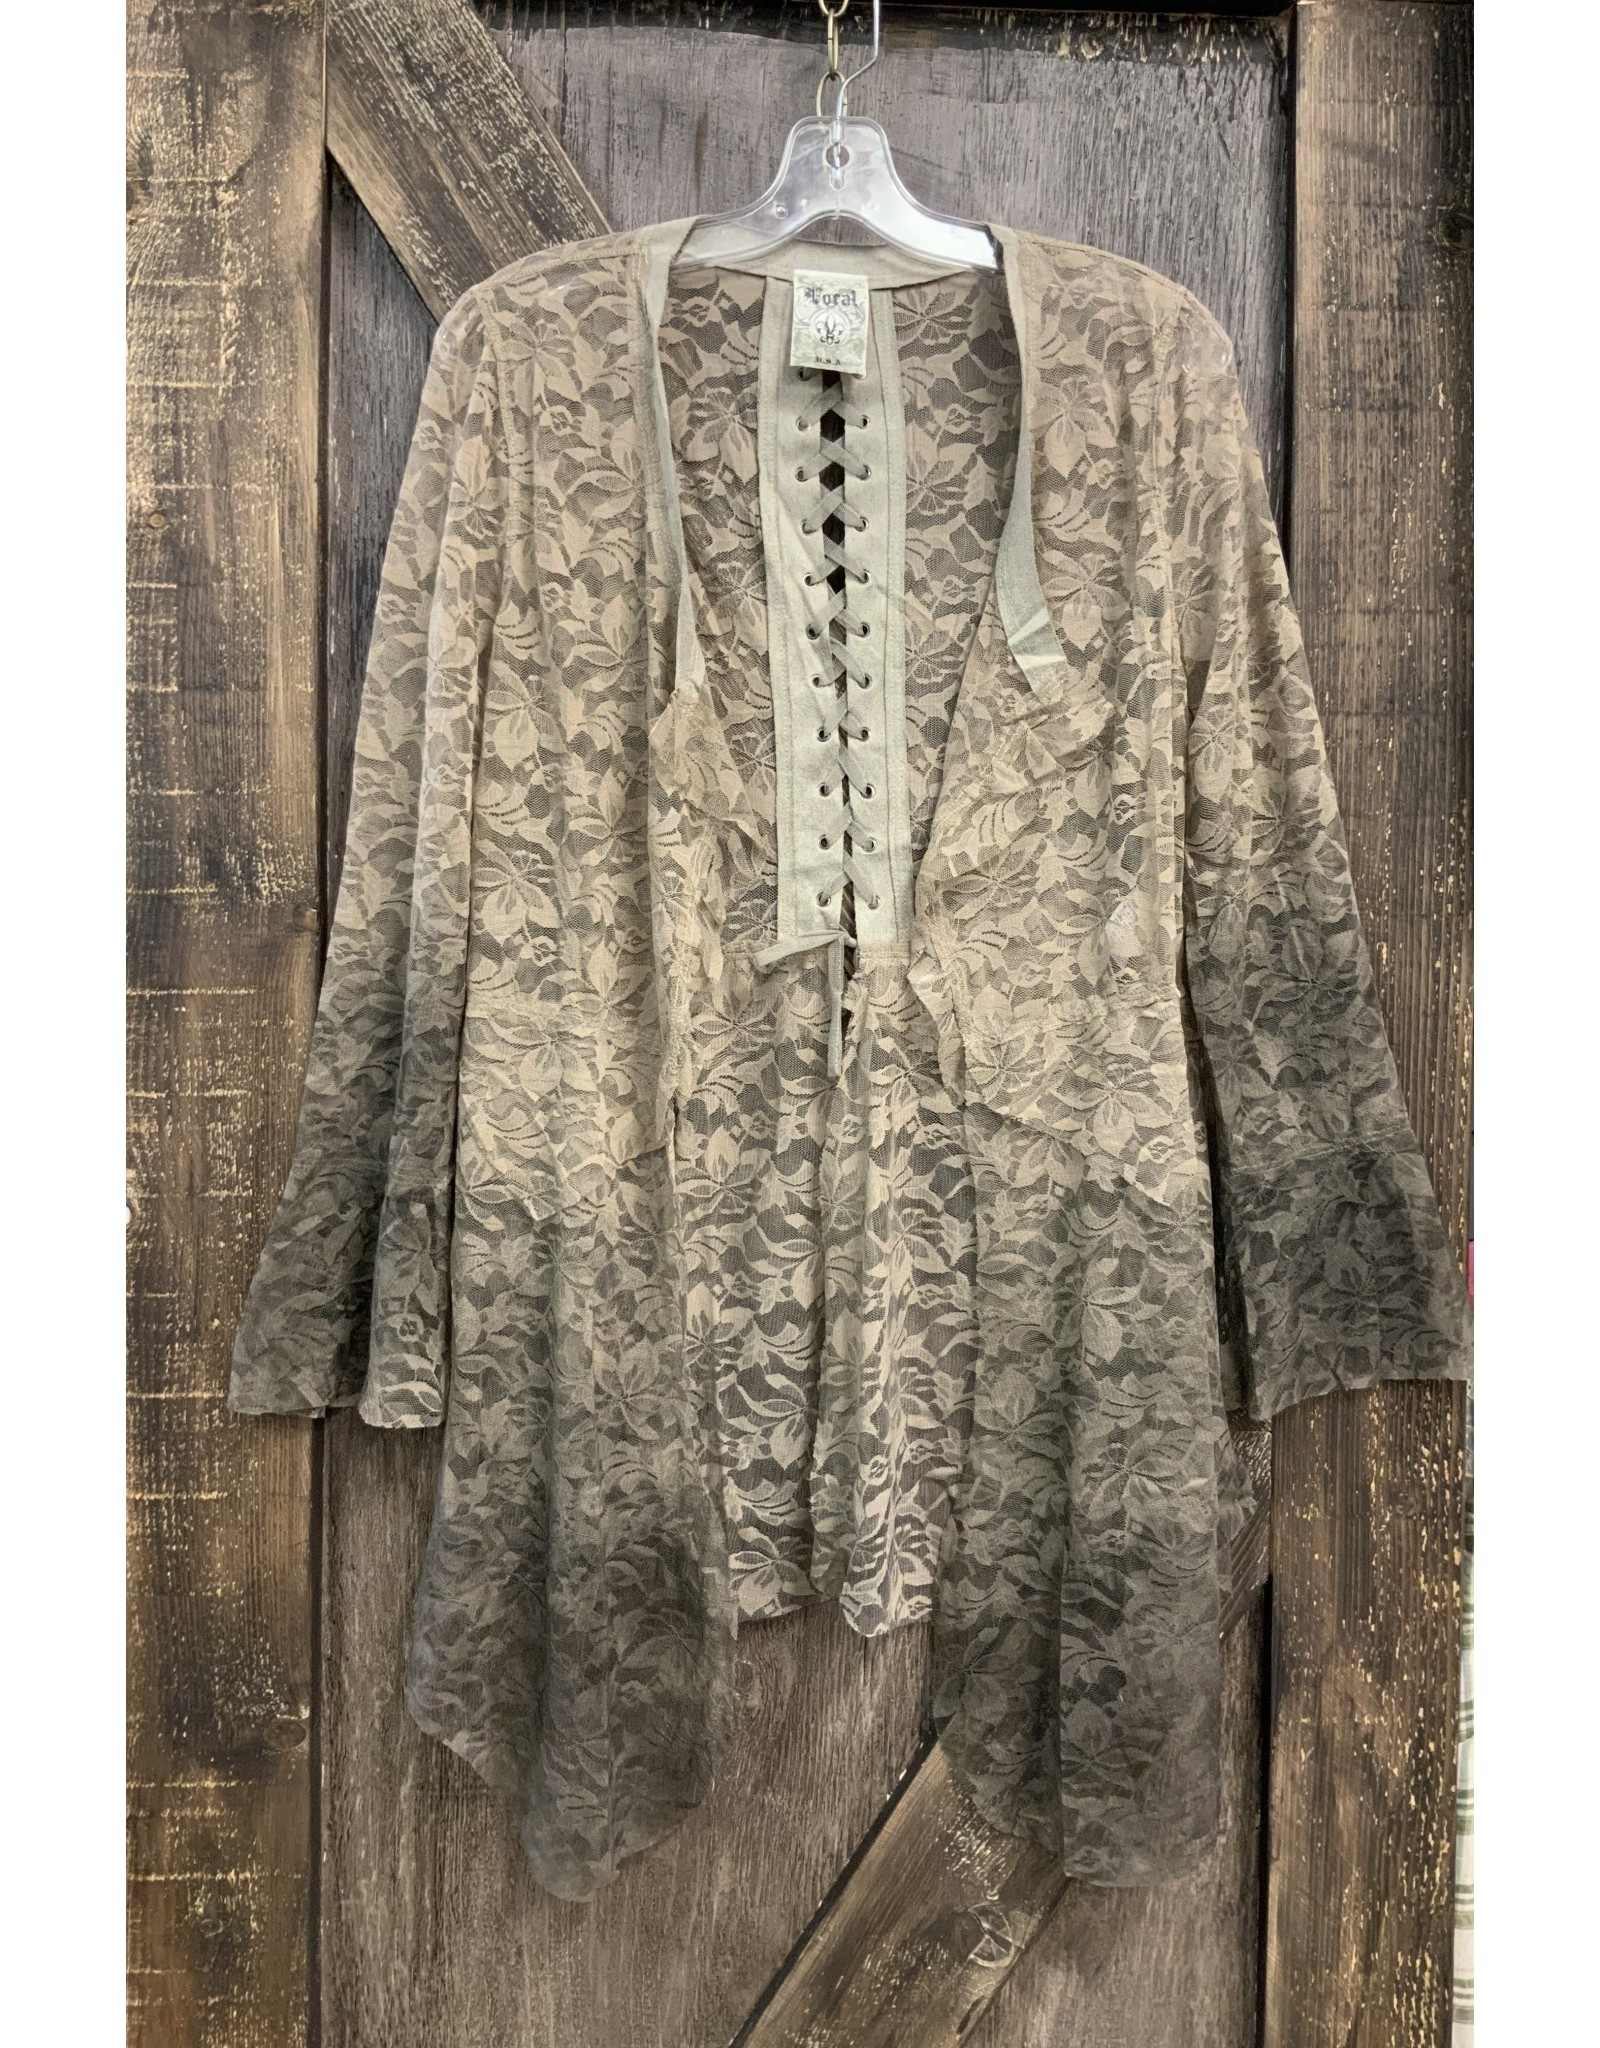 BRUSHED LACE L/S JACKET W/RUFFLE SLEEVES AND LACEUP BACK